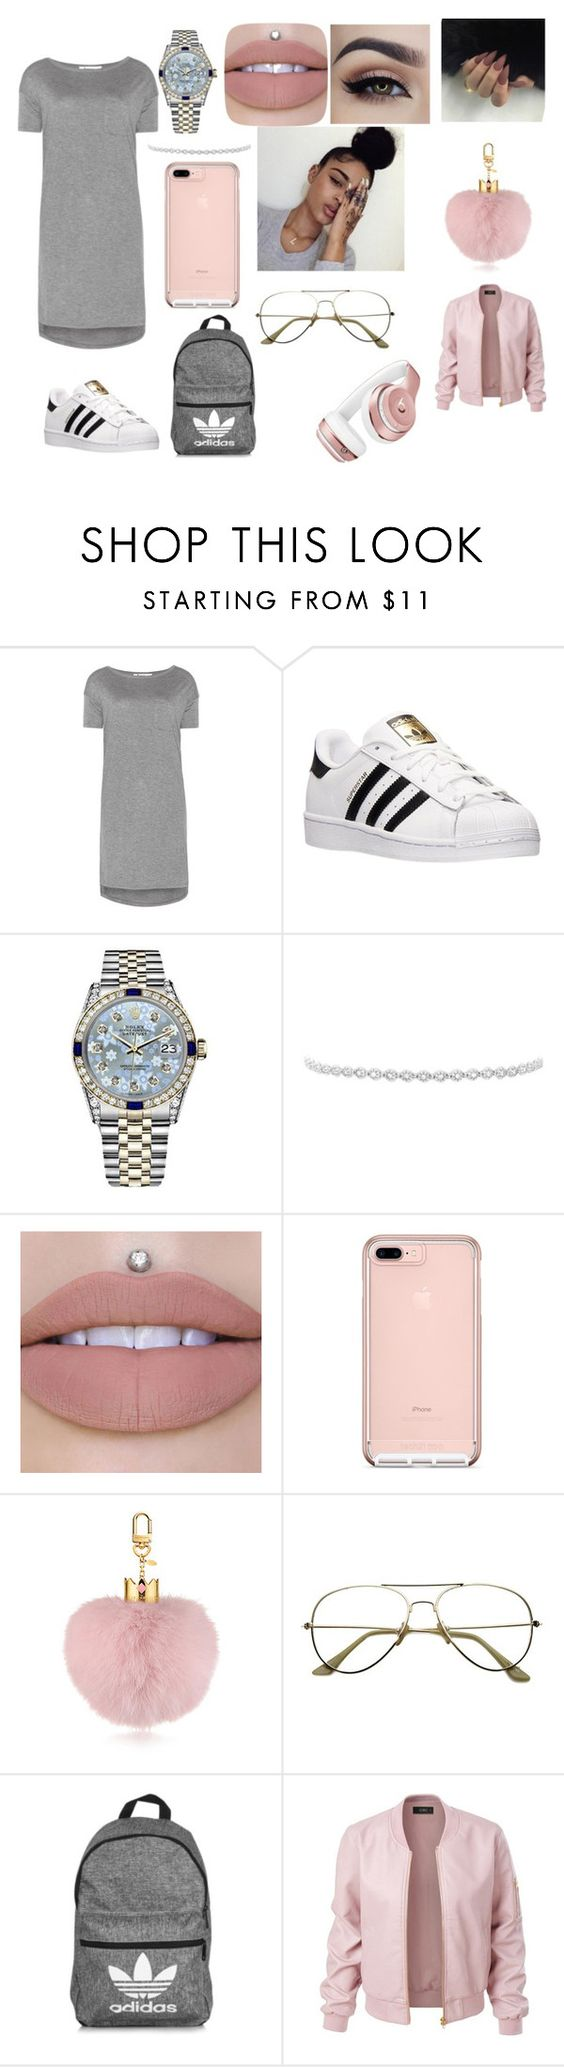 """""""chill day"""" by indiababyy-1 ❤ liked on Polyvore featuring T By Alexander Wang, adidas, Rolex, Logan Hollowell, LE3NO and Beats by Dr. Dre"""